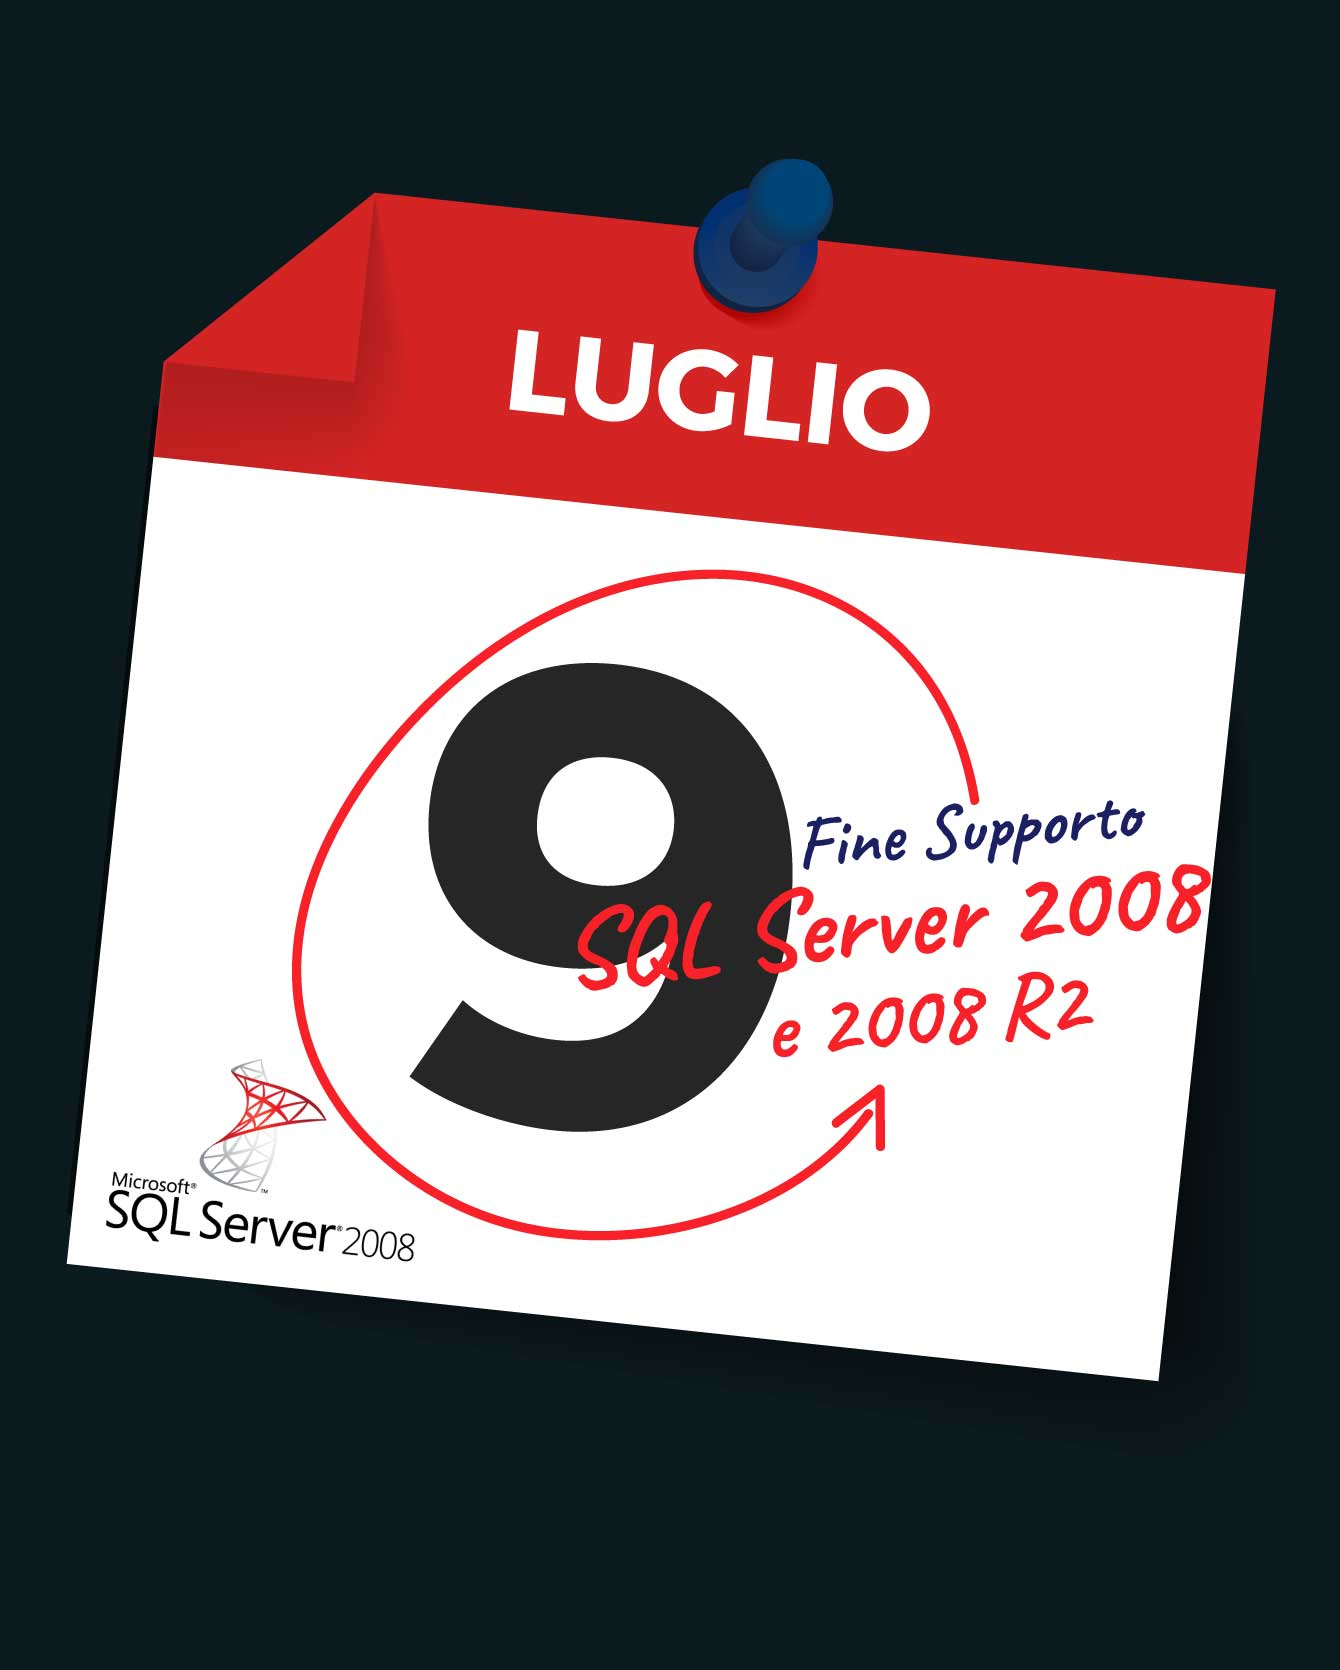 Scadenza del supporto per SQL Server 2008 e 2008 R2: keep IT safe